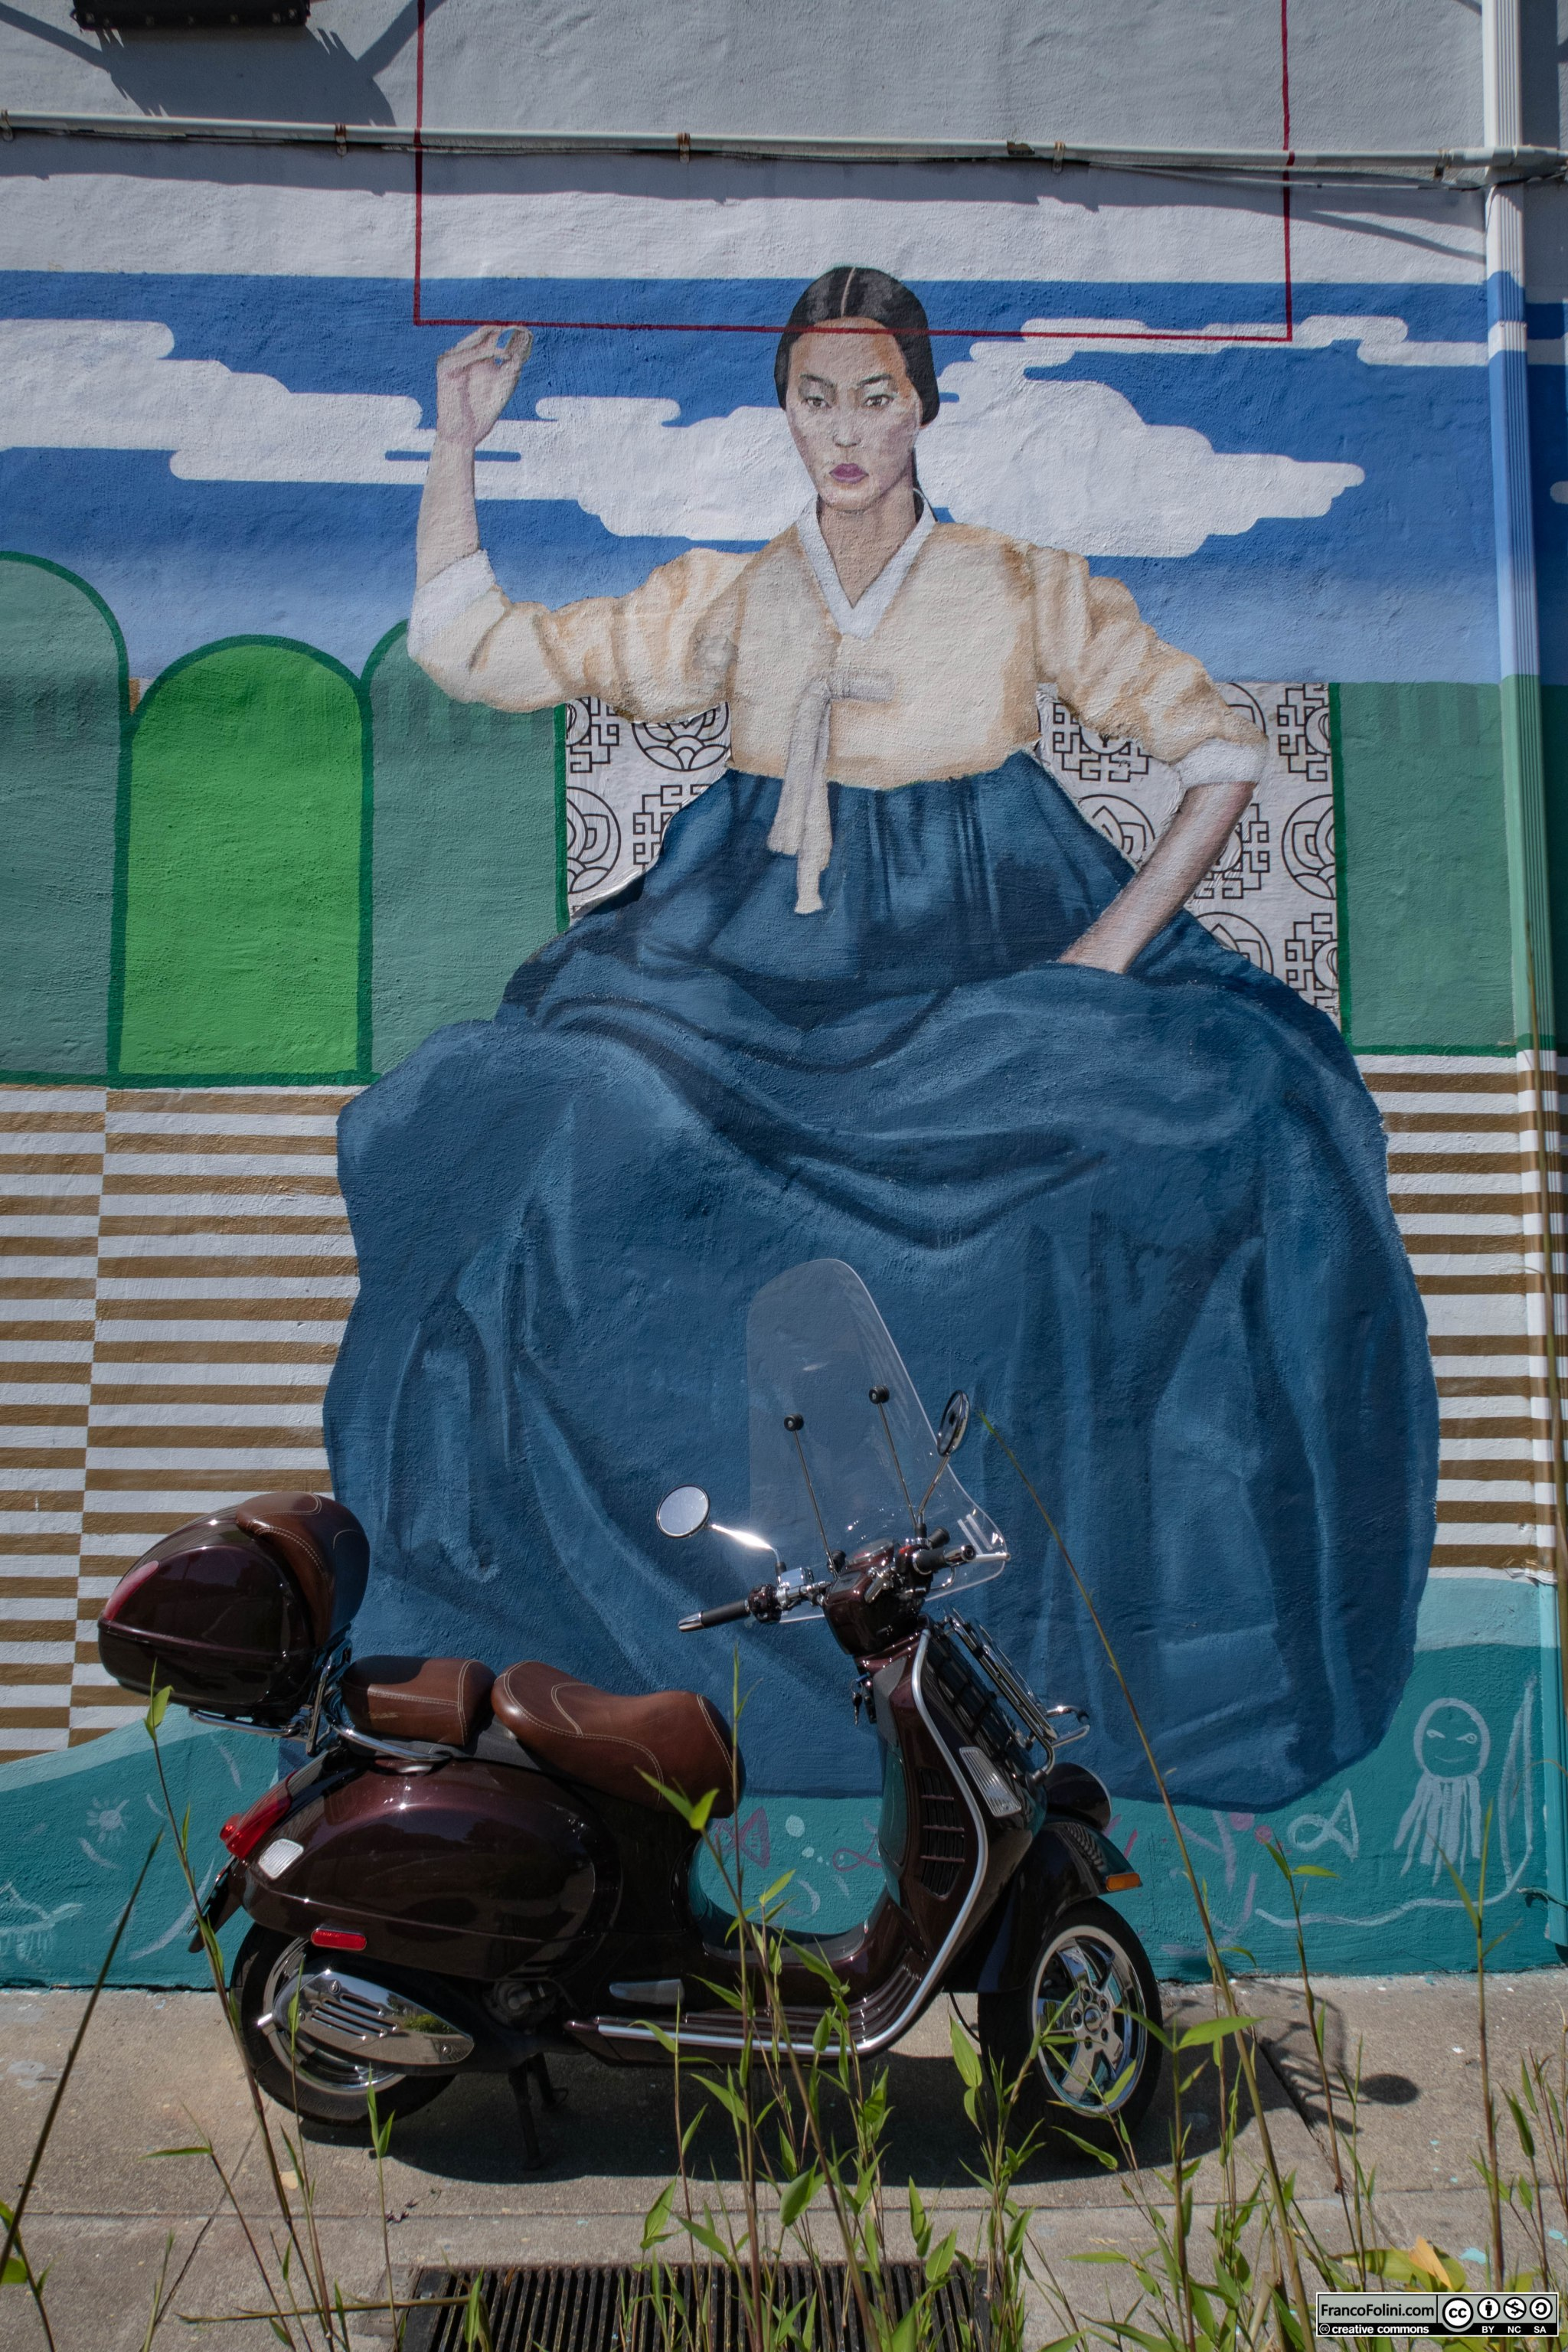 Mural & the Vespa: Korean lady by artist WestByMidwest, Oakland, CA.